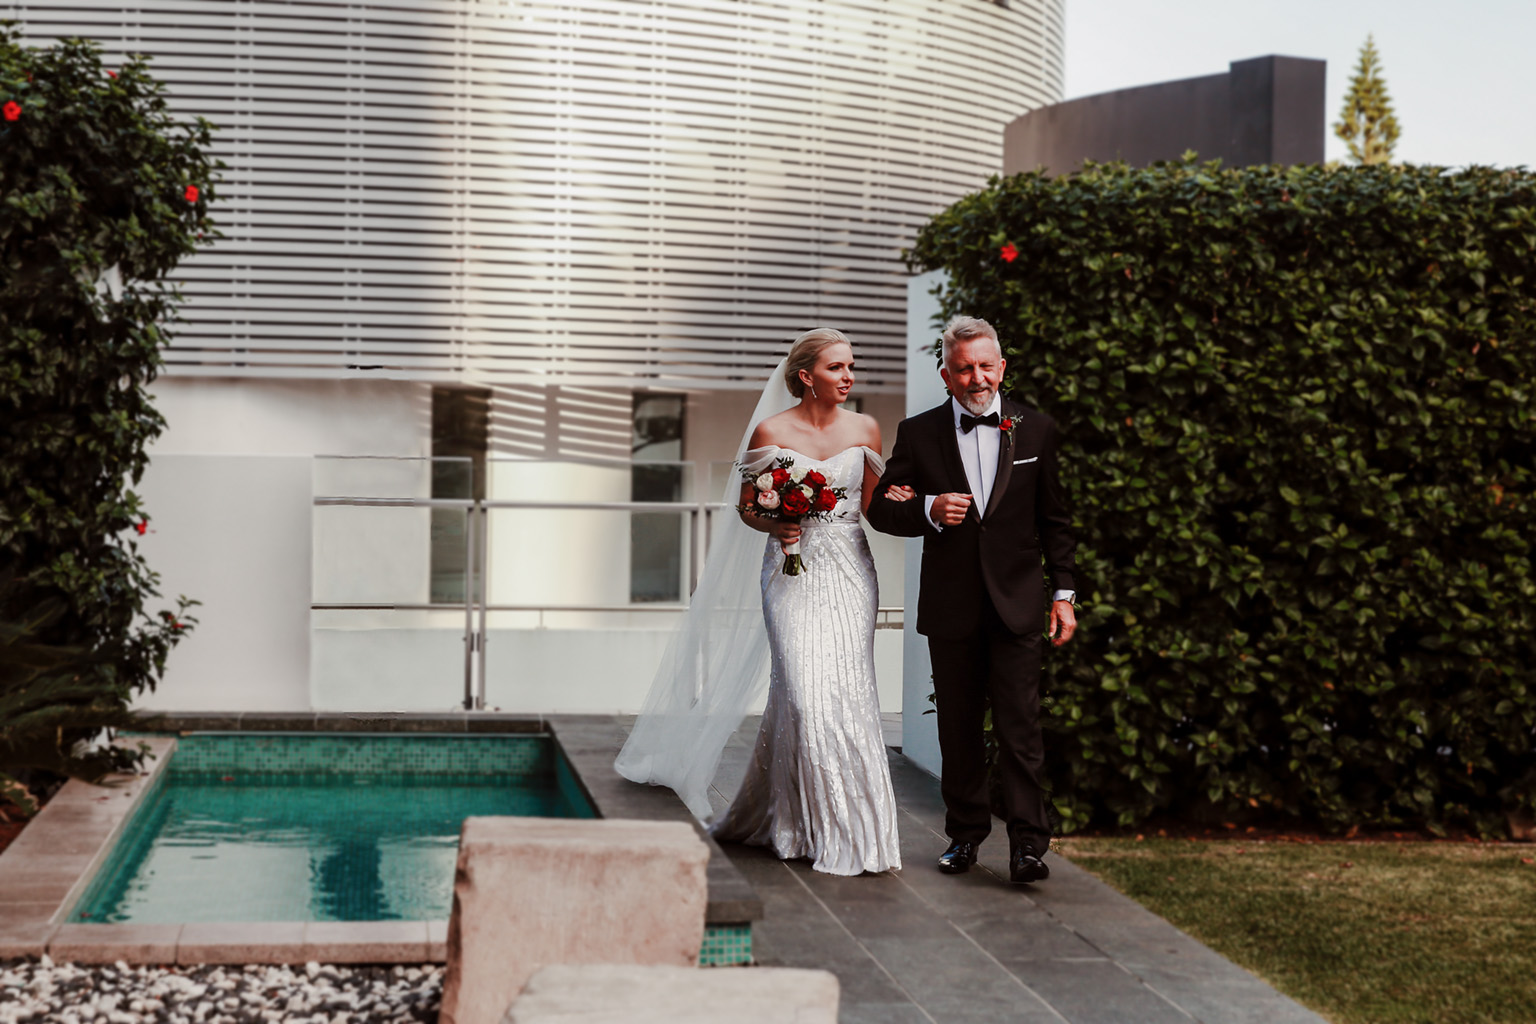 blog-image-Bride-being-walked-down-the-aisle-by-her-dad-Peppers-Garden-Terrace-gold-coast